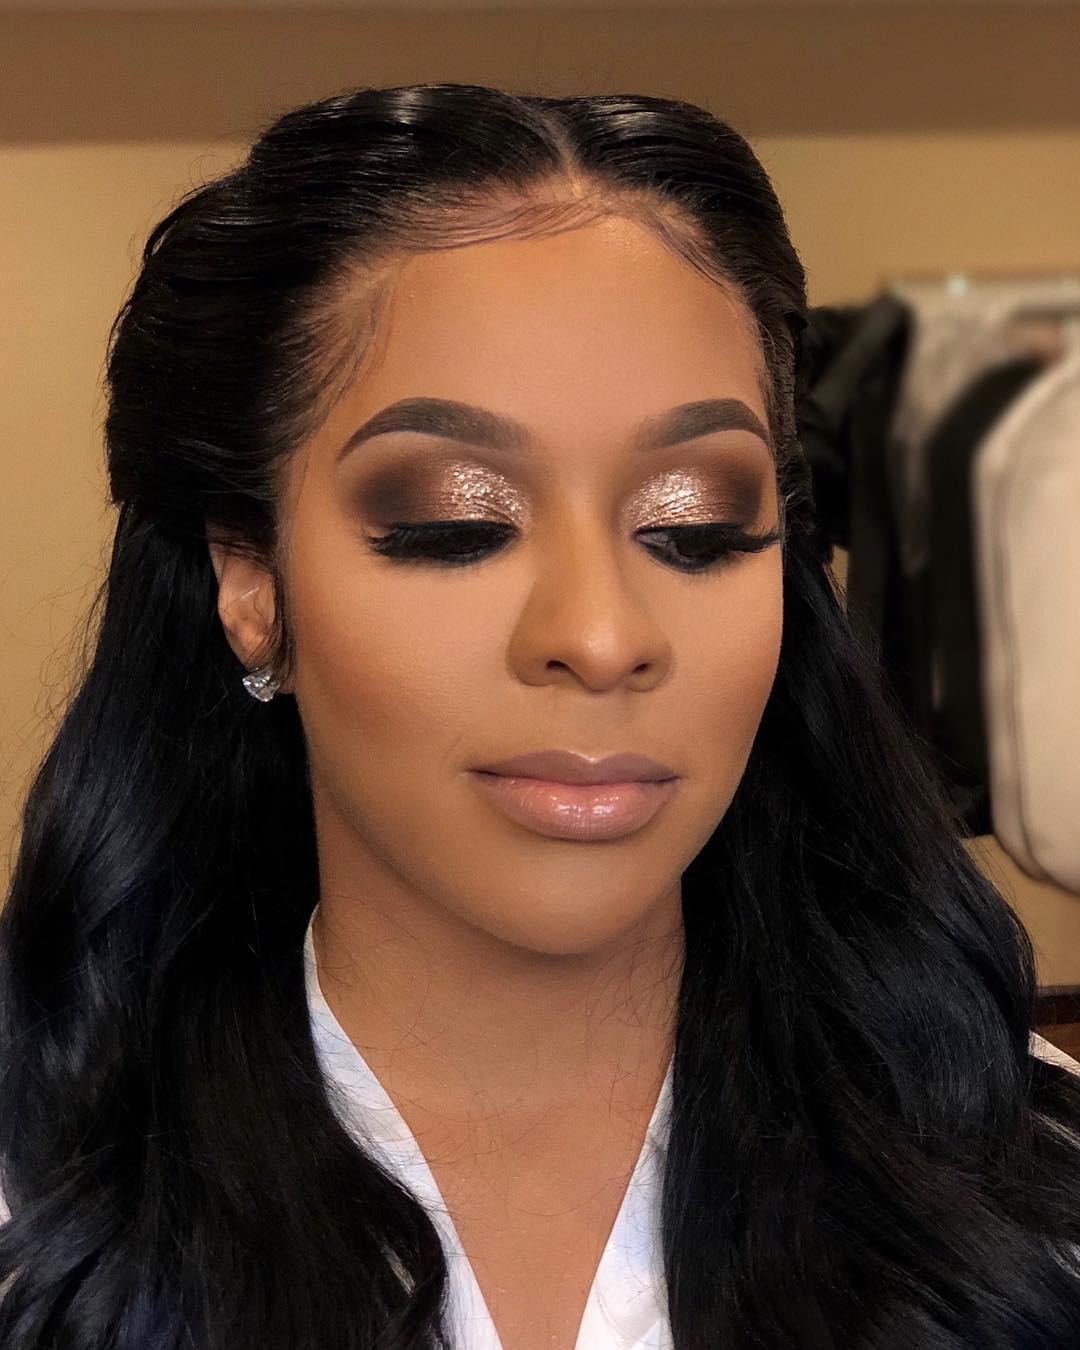 Beauty Makeup Artists and Bridal Makeup Artists for Black, Asian, White and Latino Brides